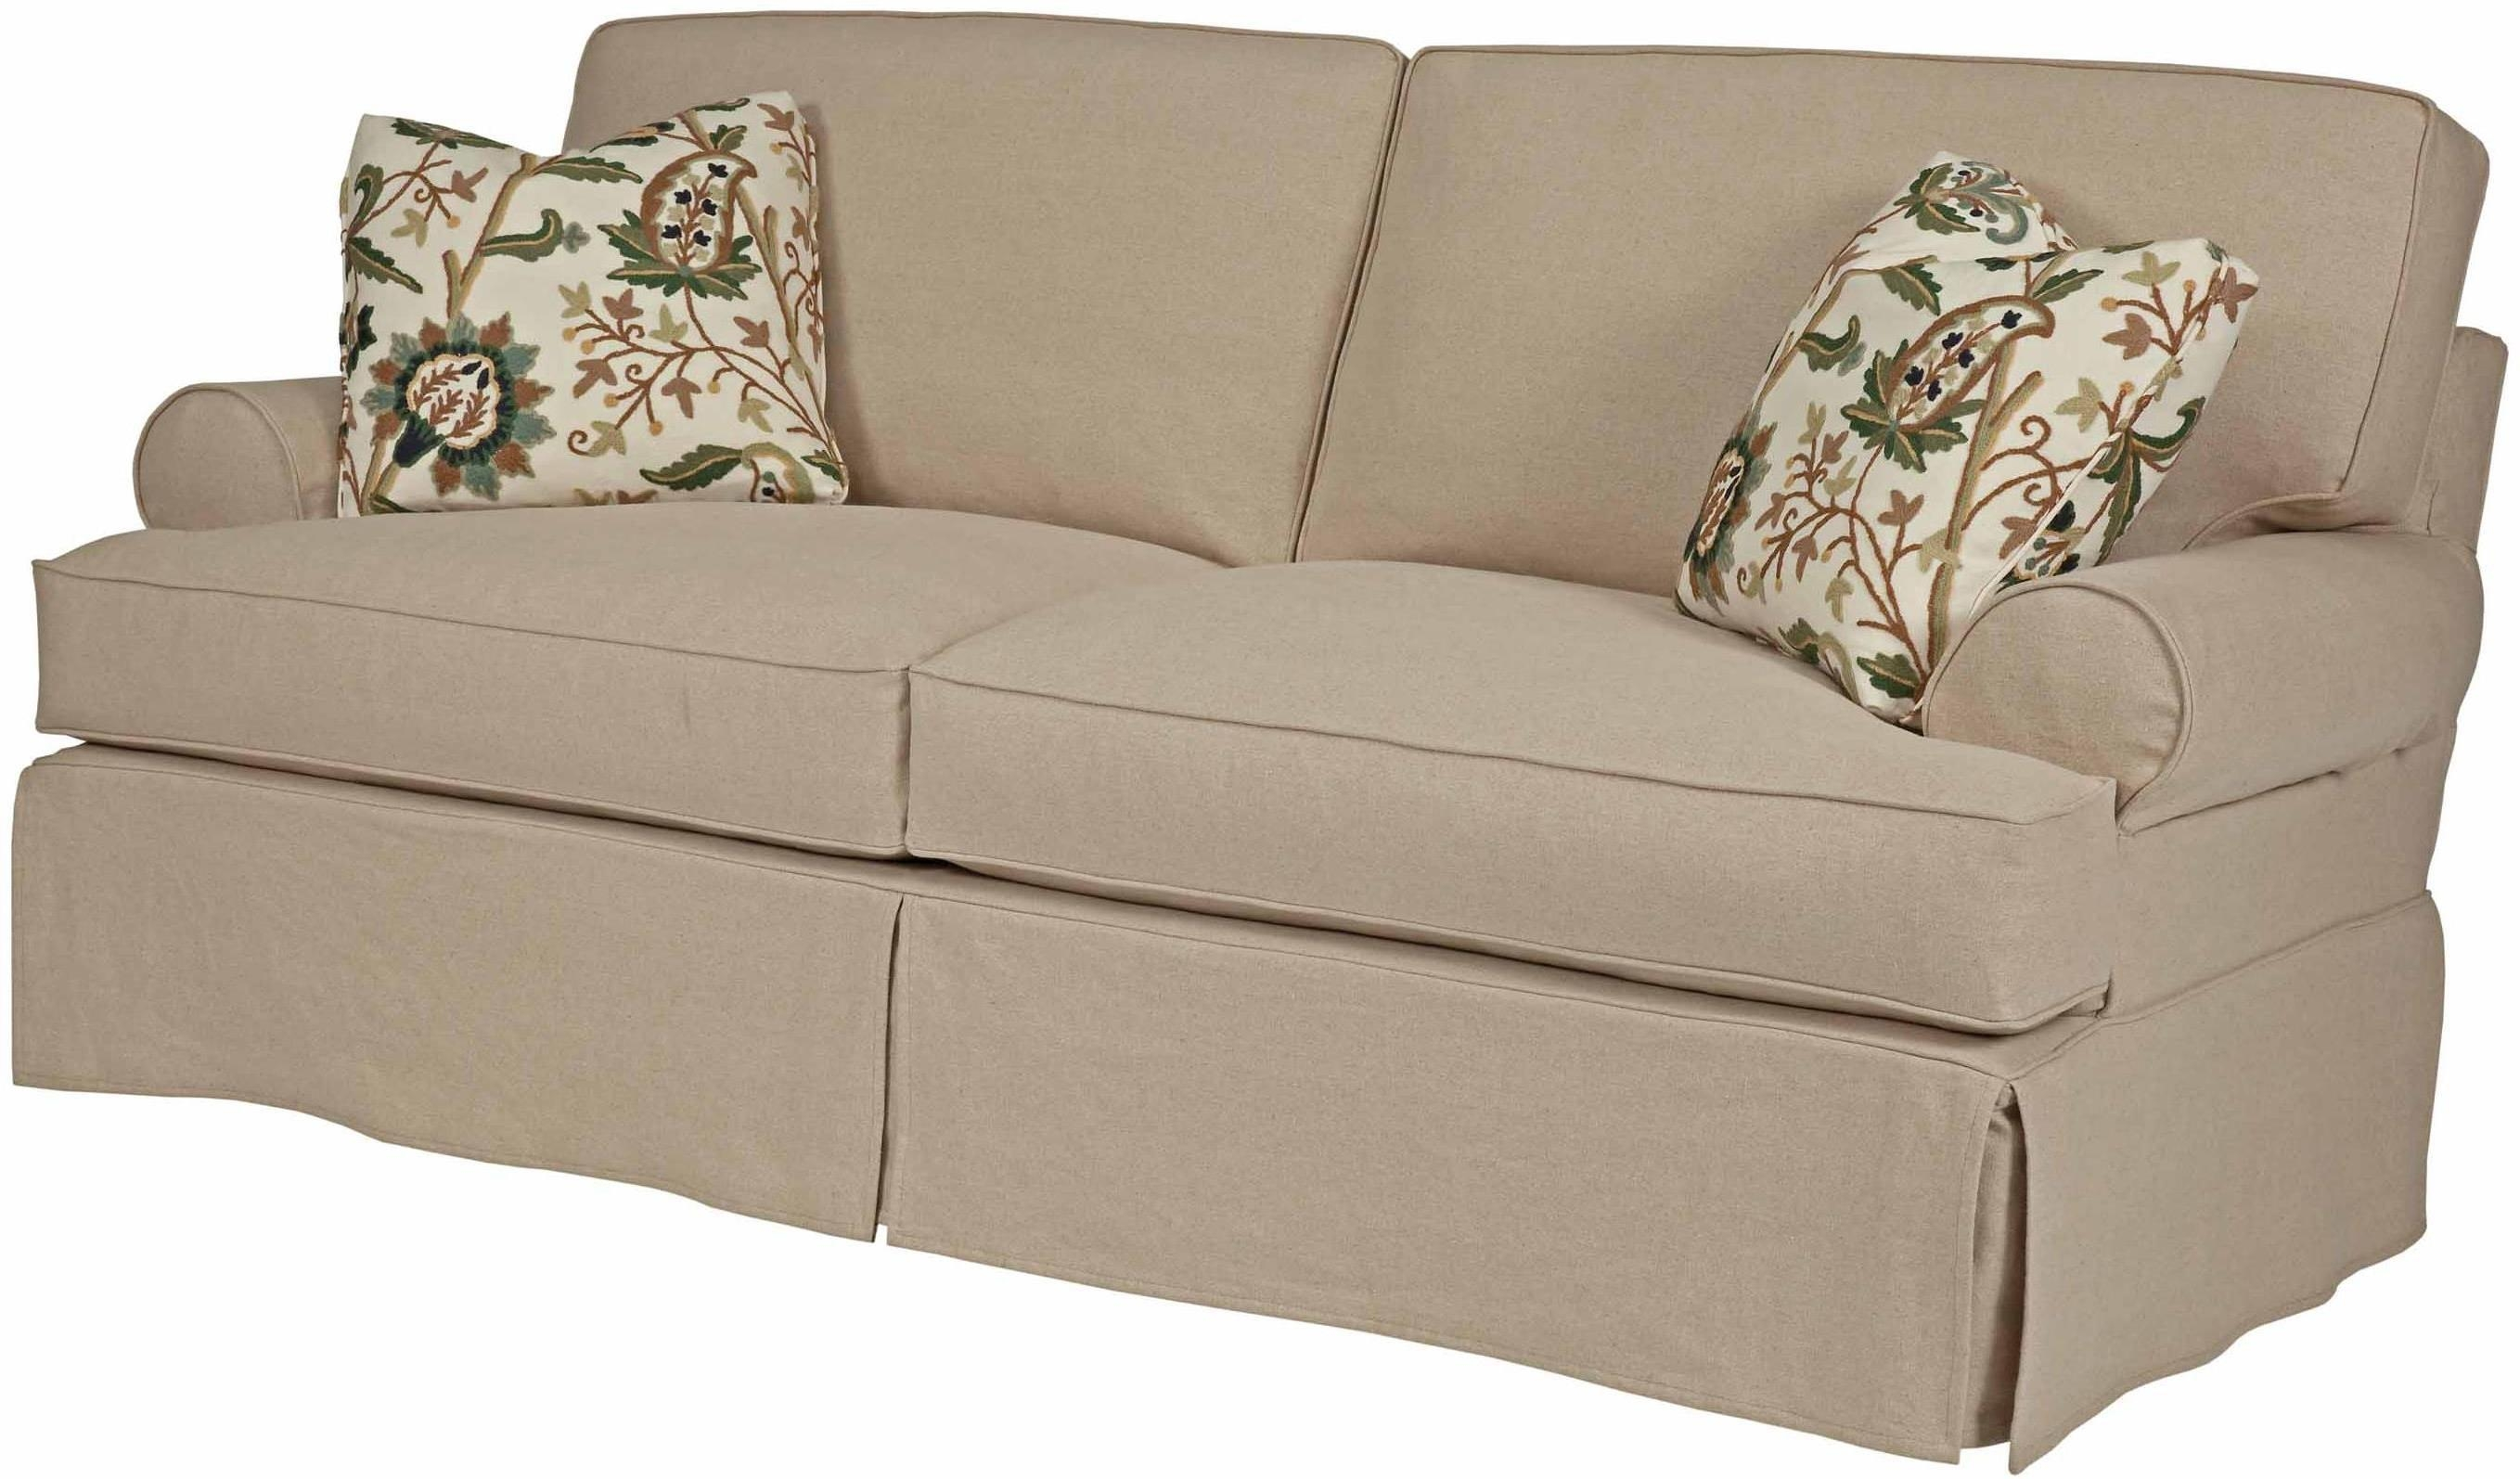 Furniture: Slipcovers For Couch | Sofa Cushion Covers | With Sofa Cushion Covers (Image 4 of 20)